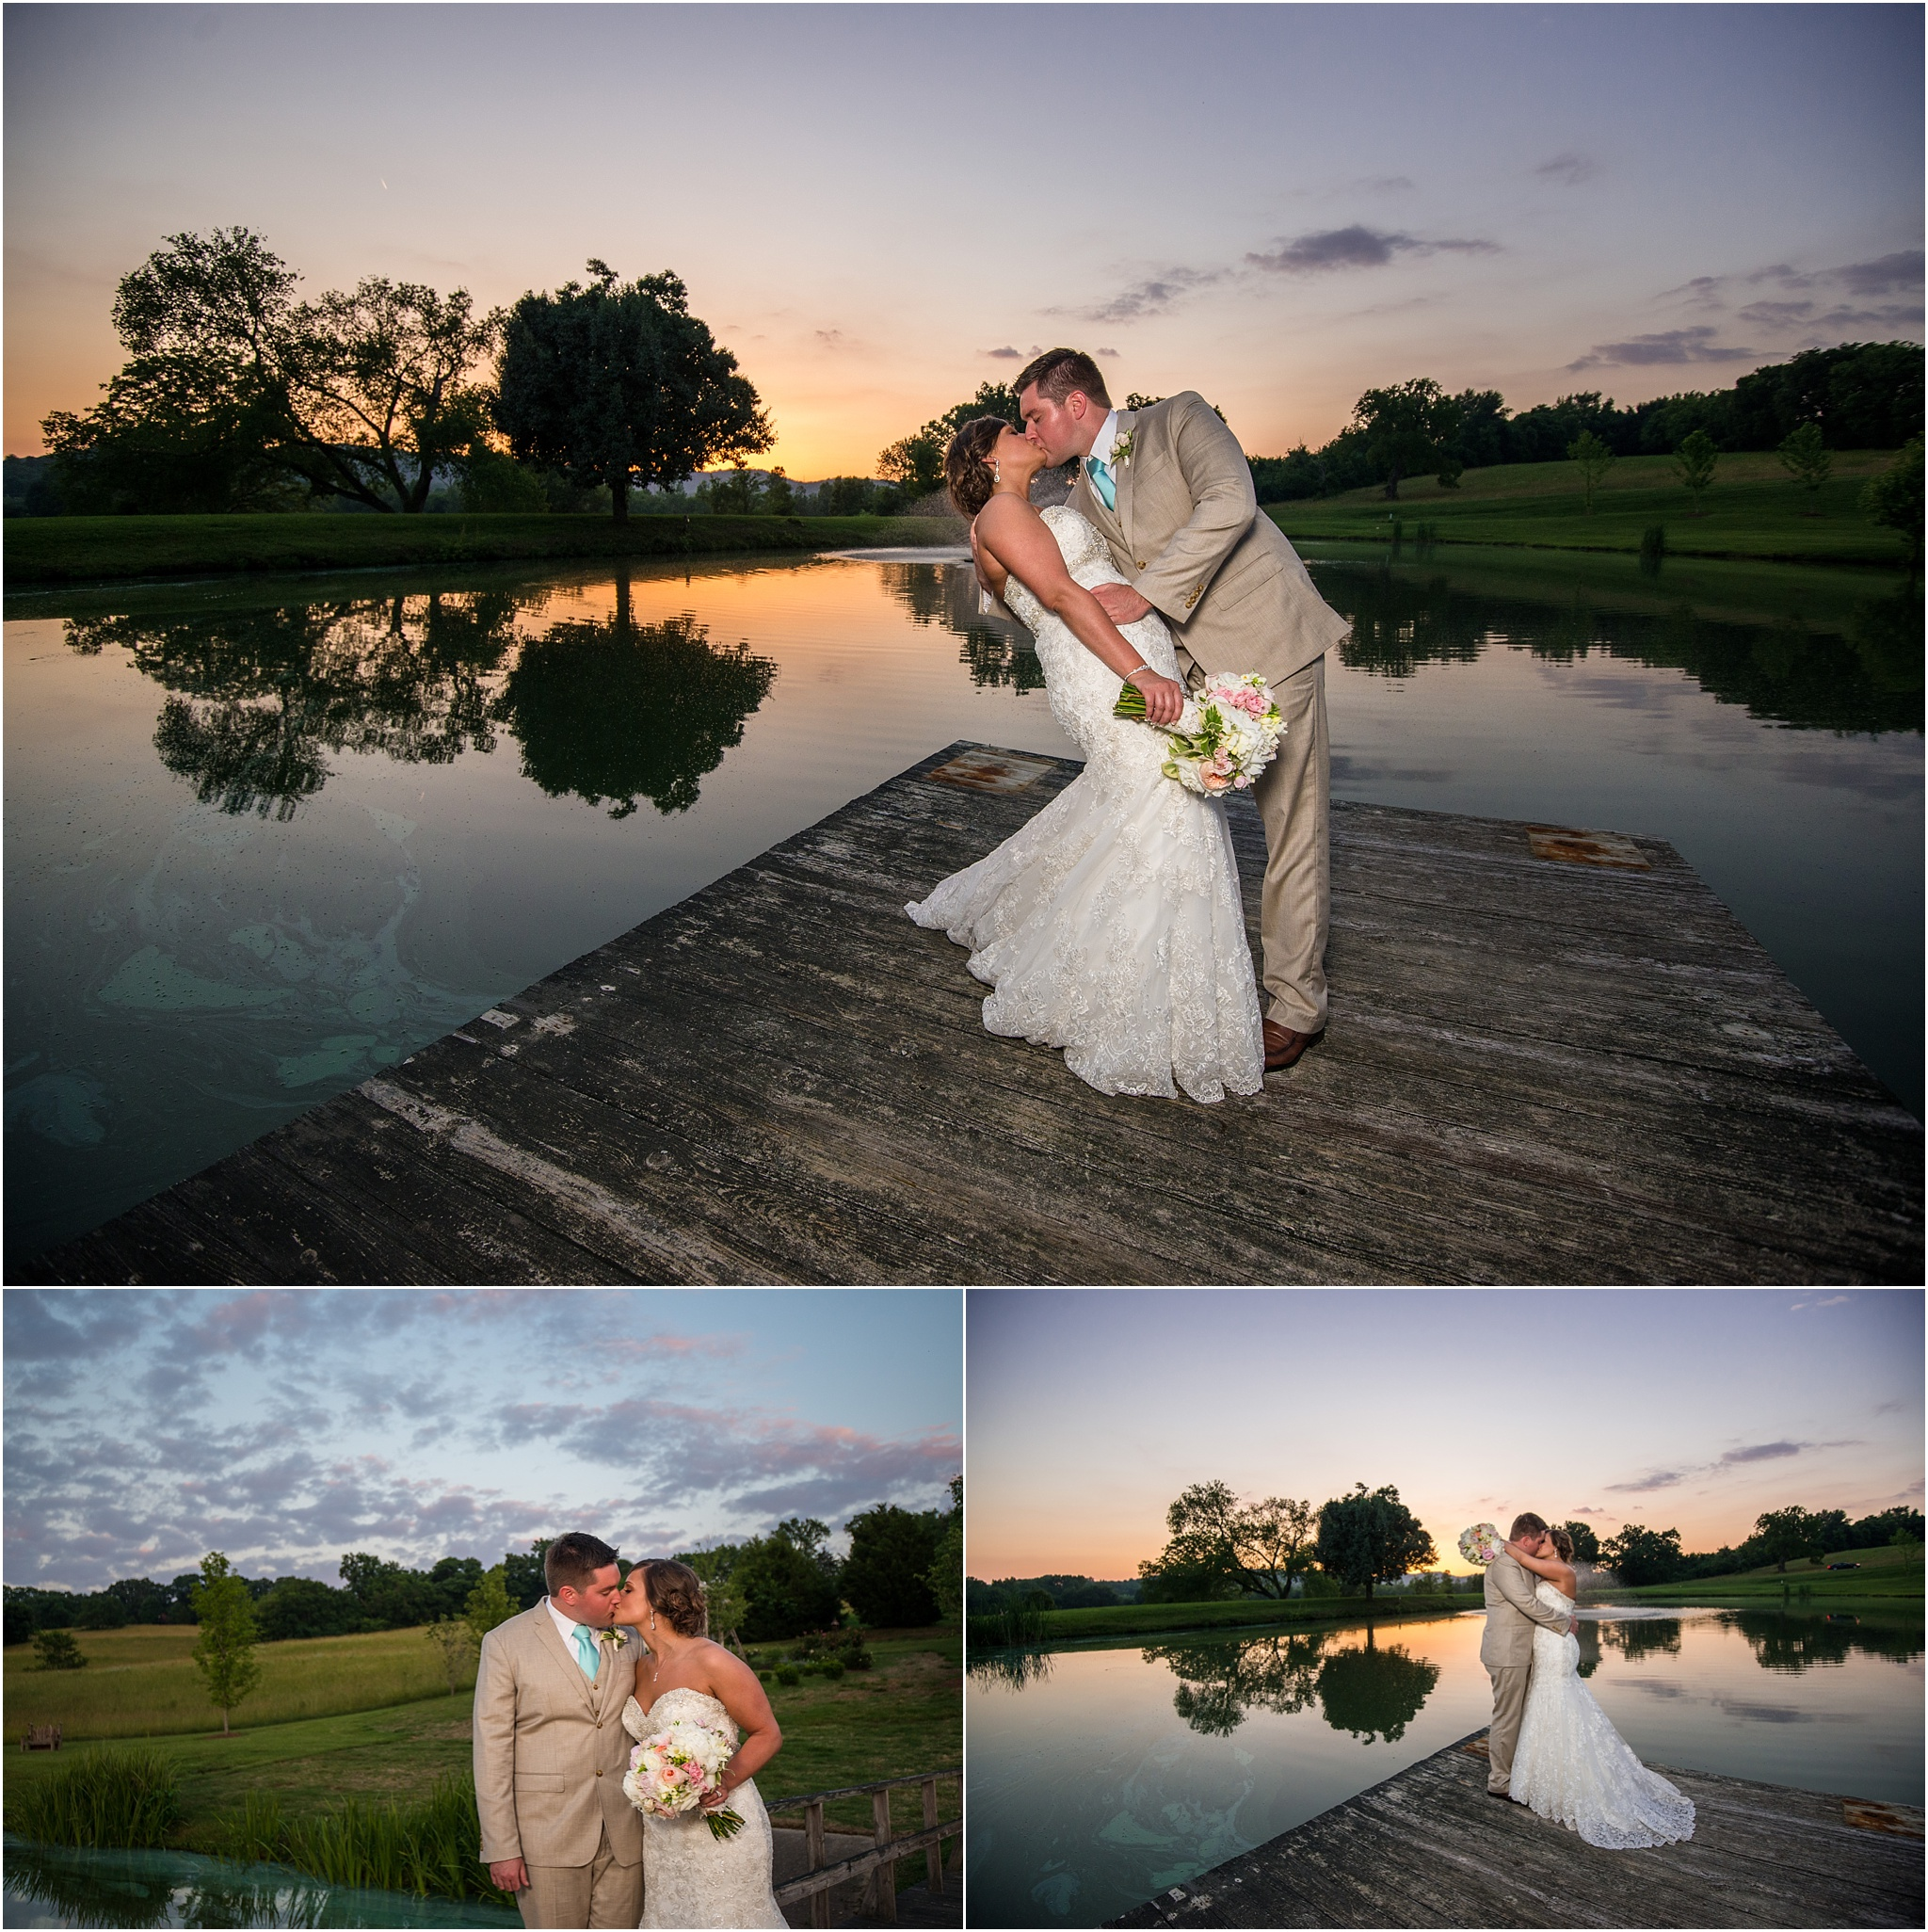 Greg Smit Photography Nashville wedding photographer Mint Springs Farm  25